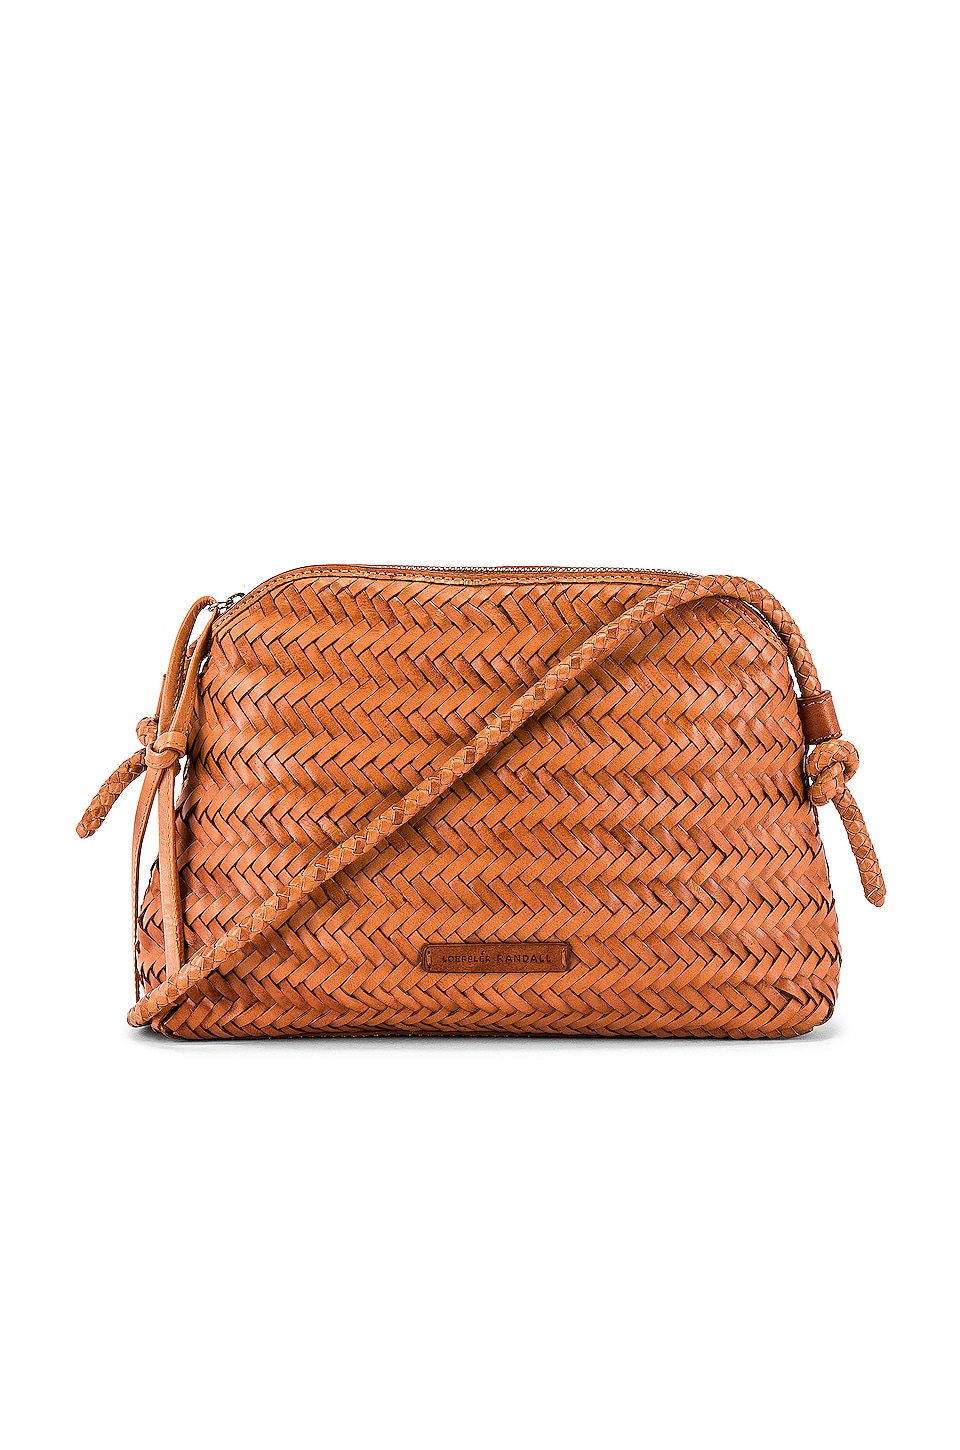 Loeffler Randall Mallory Woven Crossbody Bag in Timber Brown